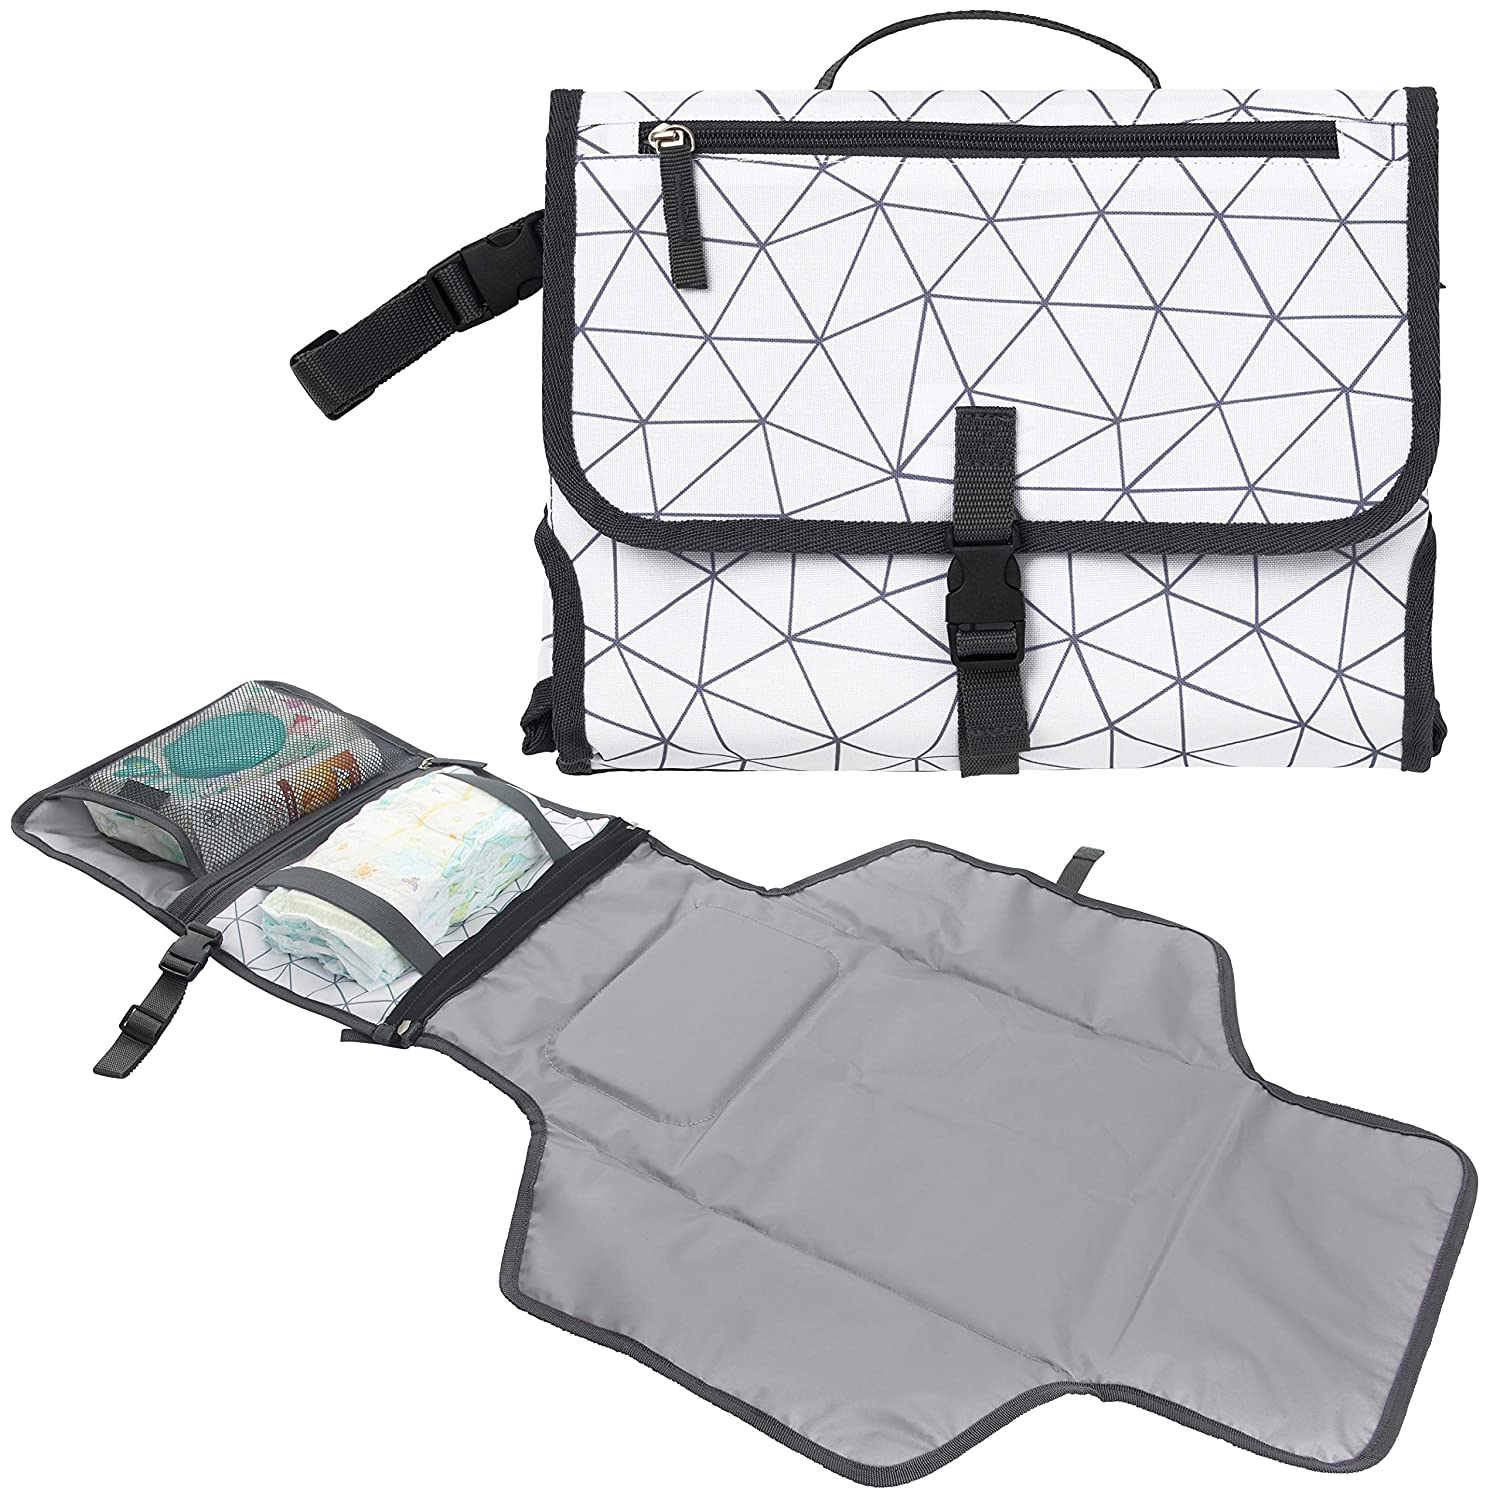 Baby Portable Diaper Changing Pad, Waterproof Travel Changing Mat Station | Built-in Padded Head Rest, Includes Mesh Pockets for Diapers and Wipes, and Adjustable Strap for Strollers